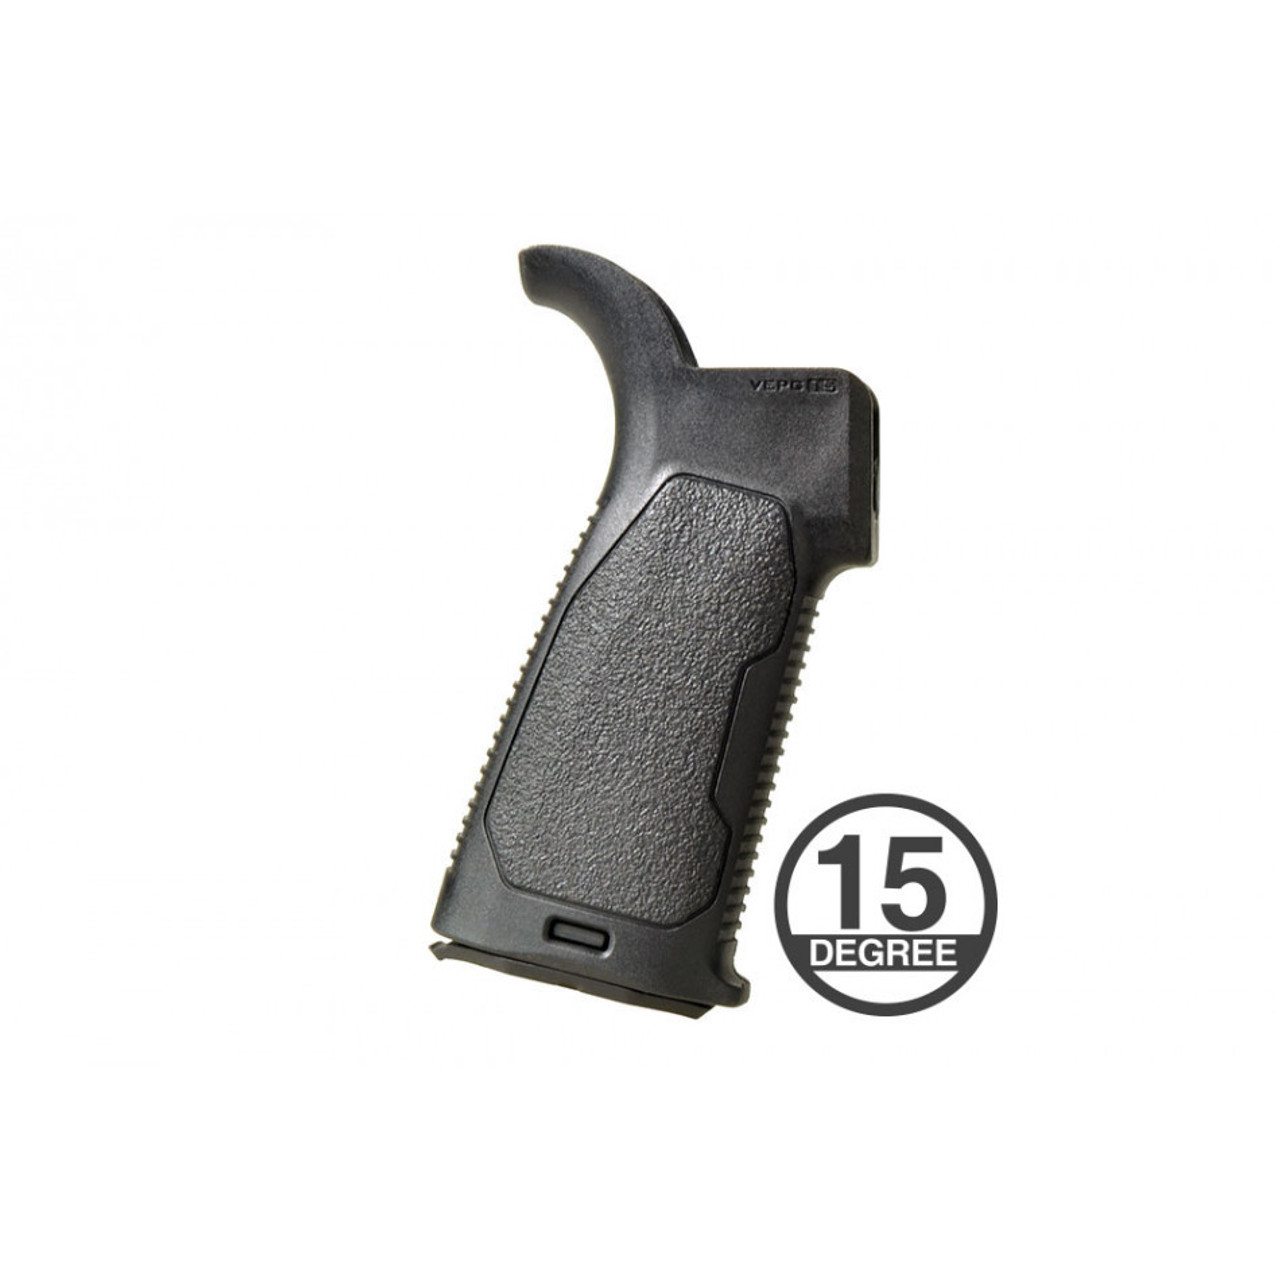 Strike Industries Viper Enhanced Pistol Grip - 15 degree